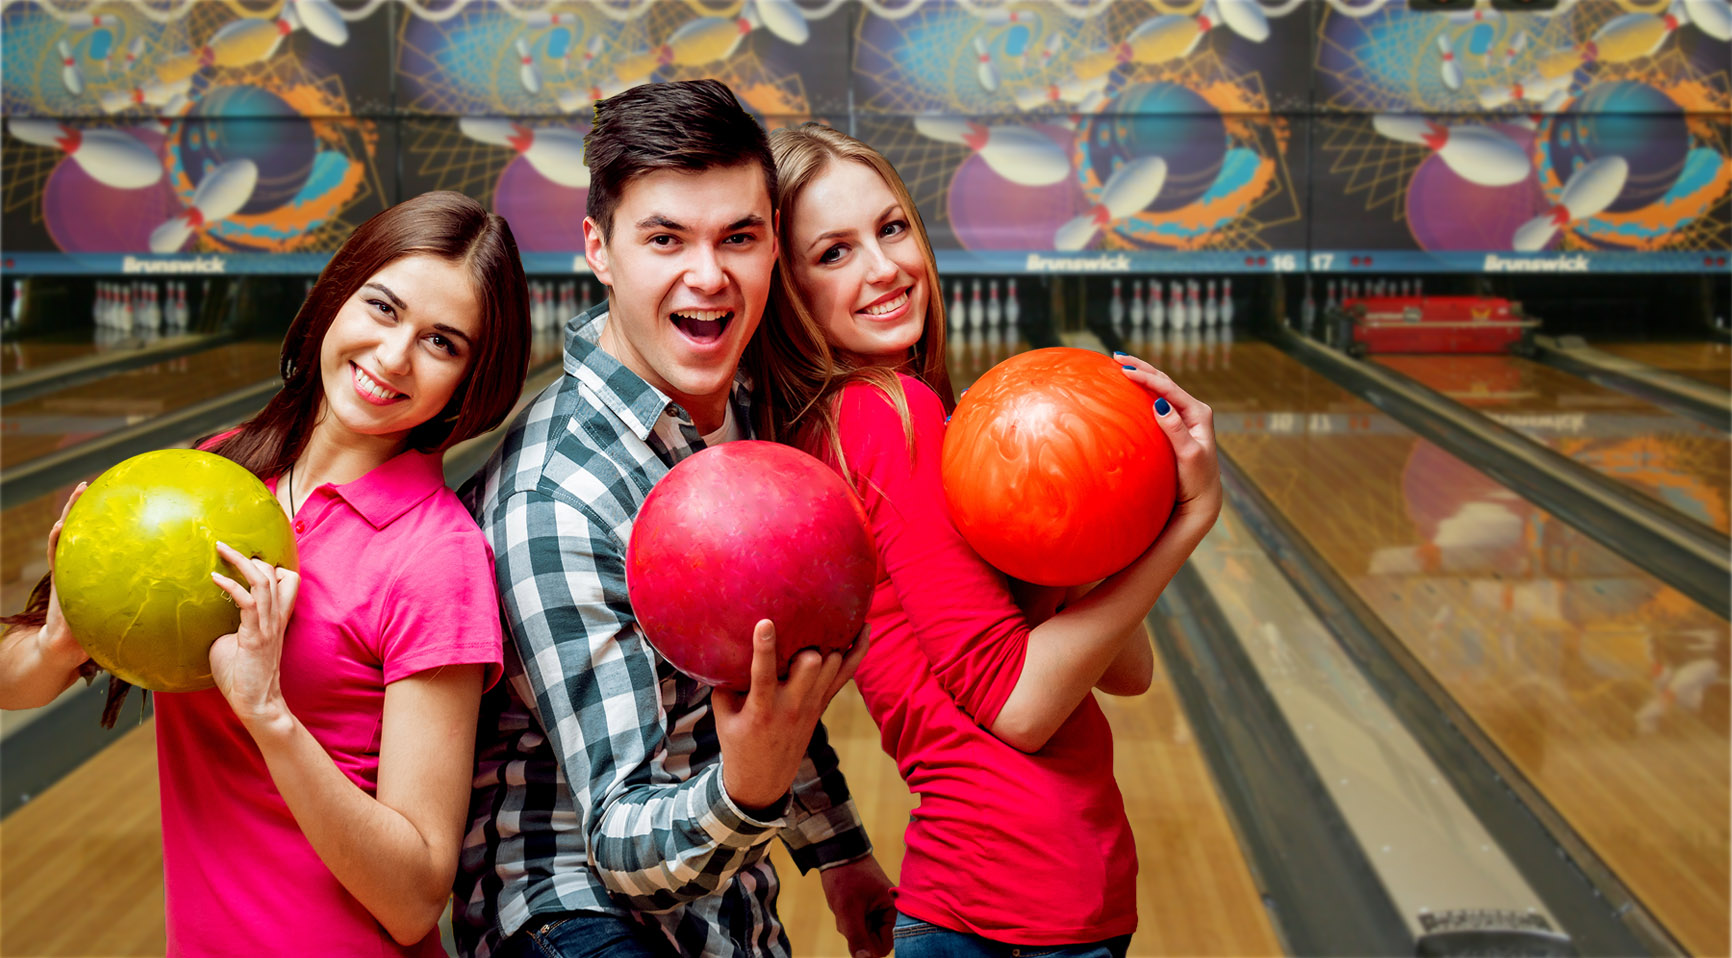 Forest Hill Lanes offers special deals for you